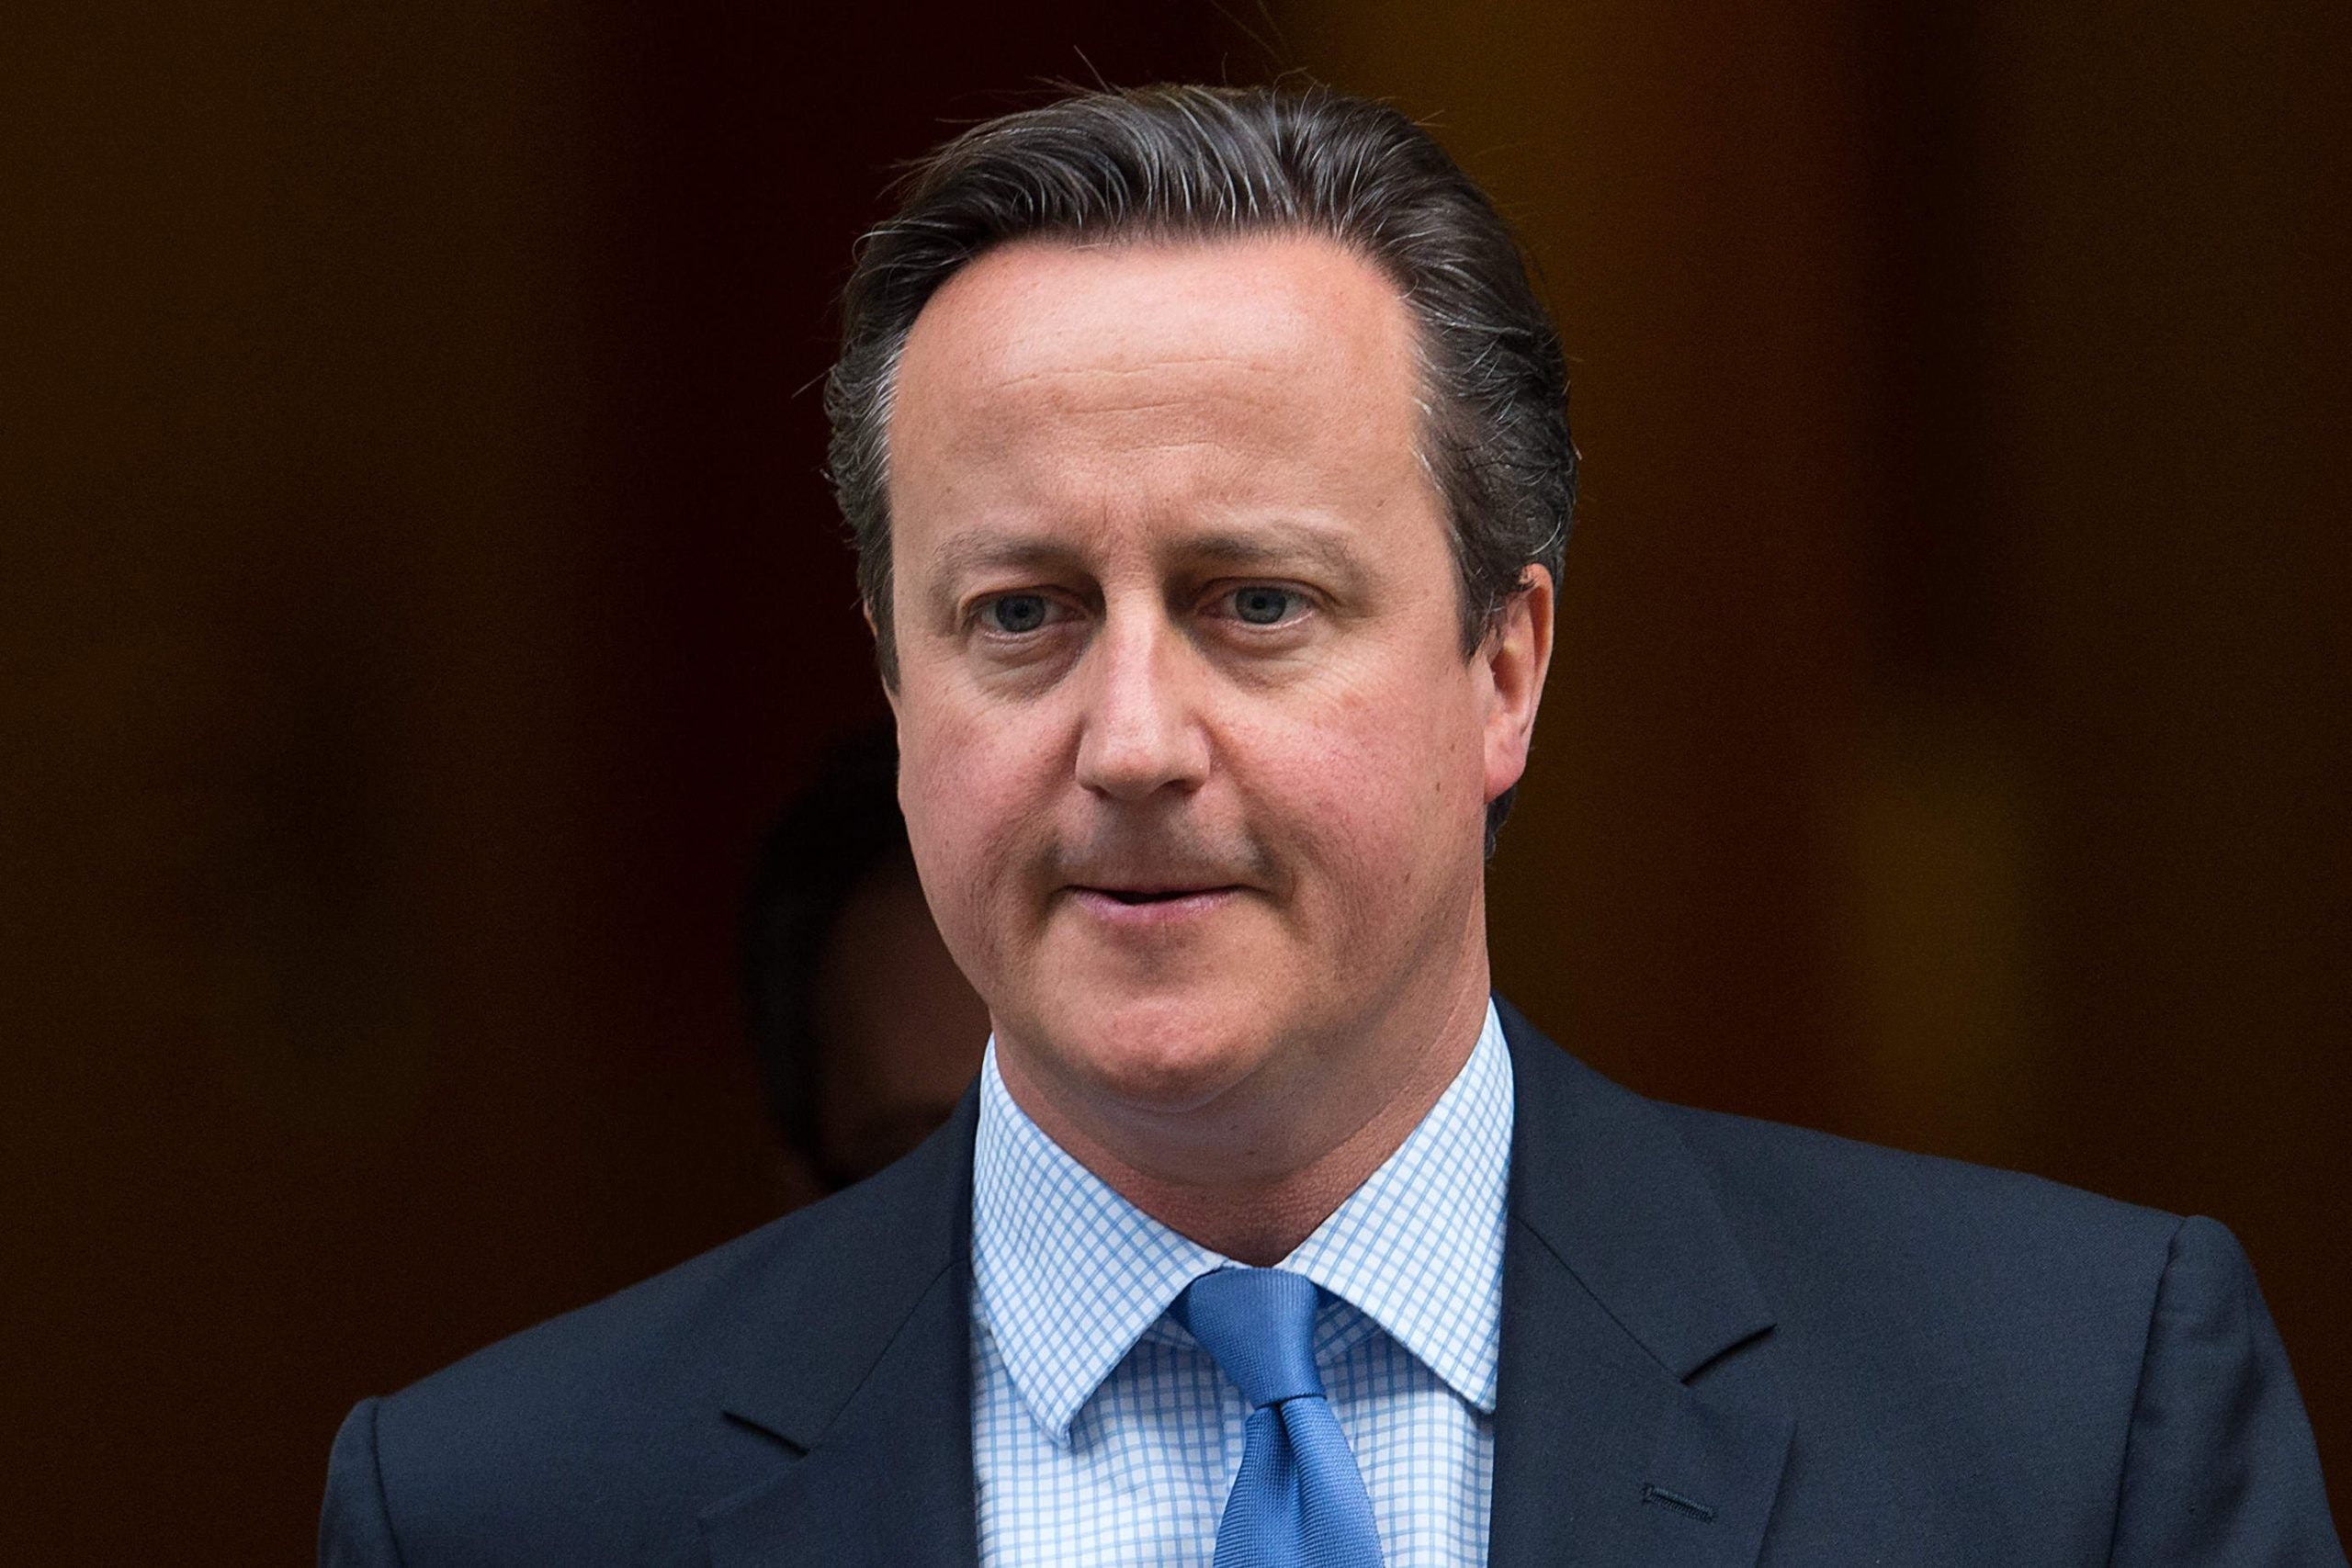 Forget David Cameron - and focus on keeping Britain in Europe